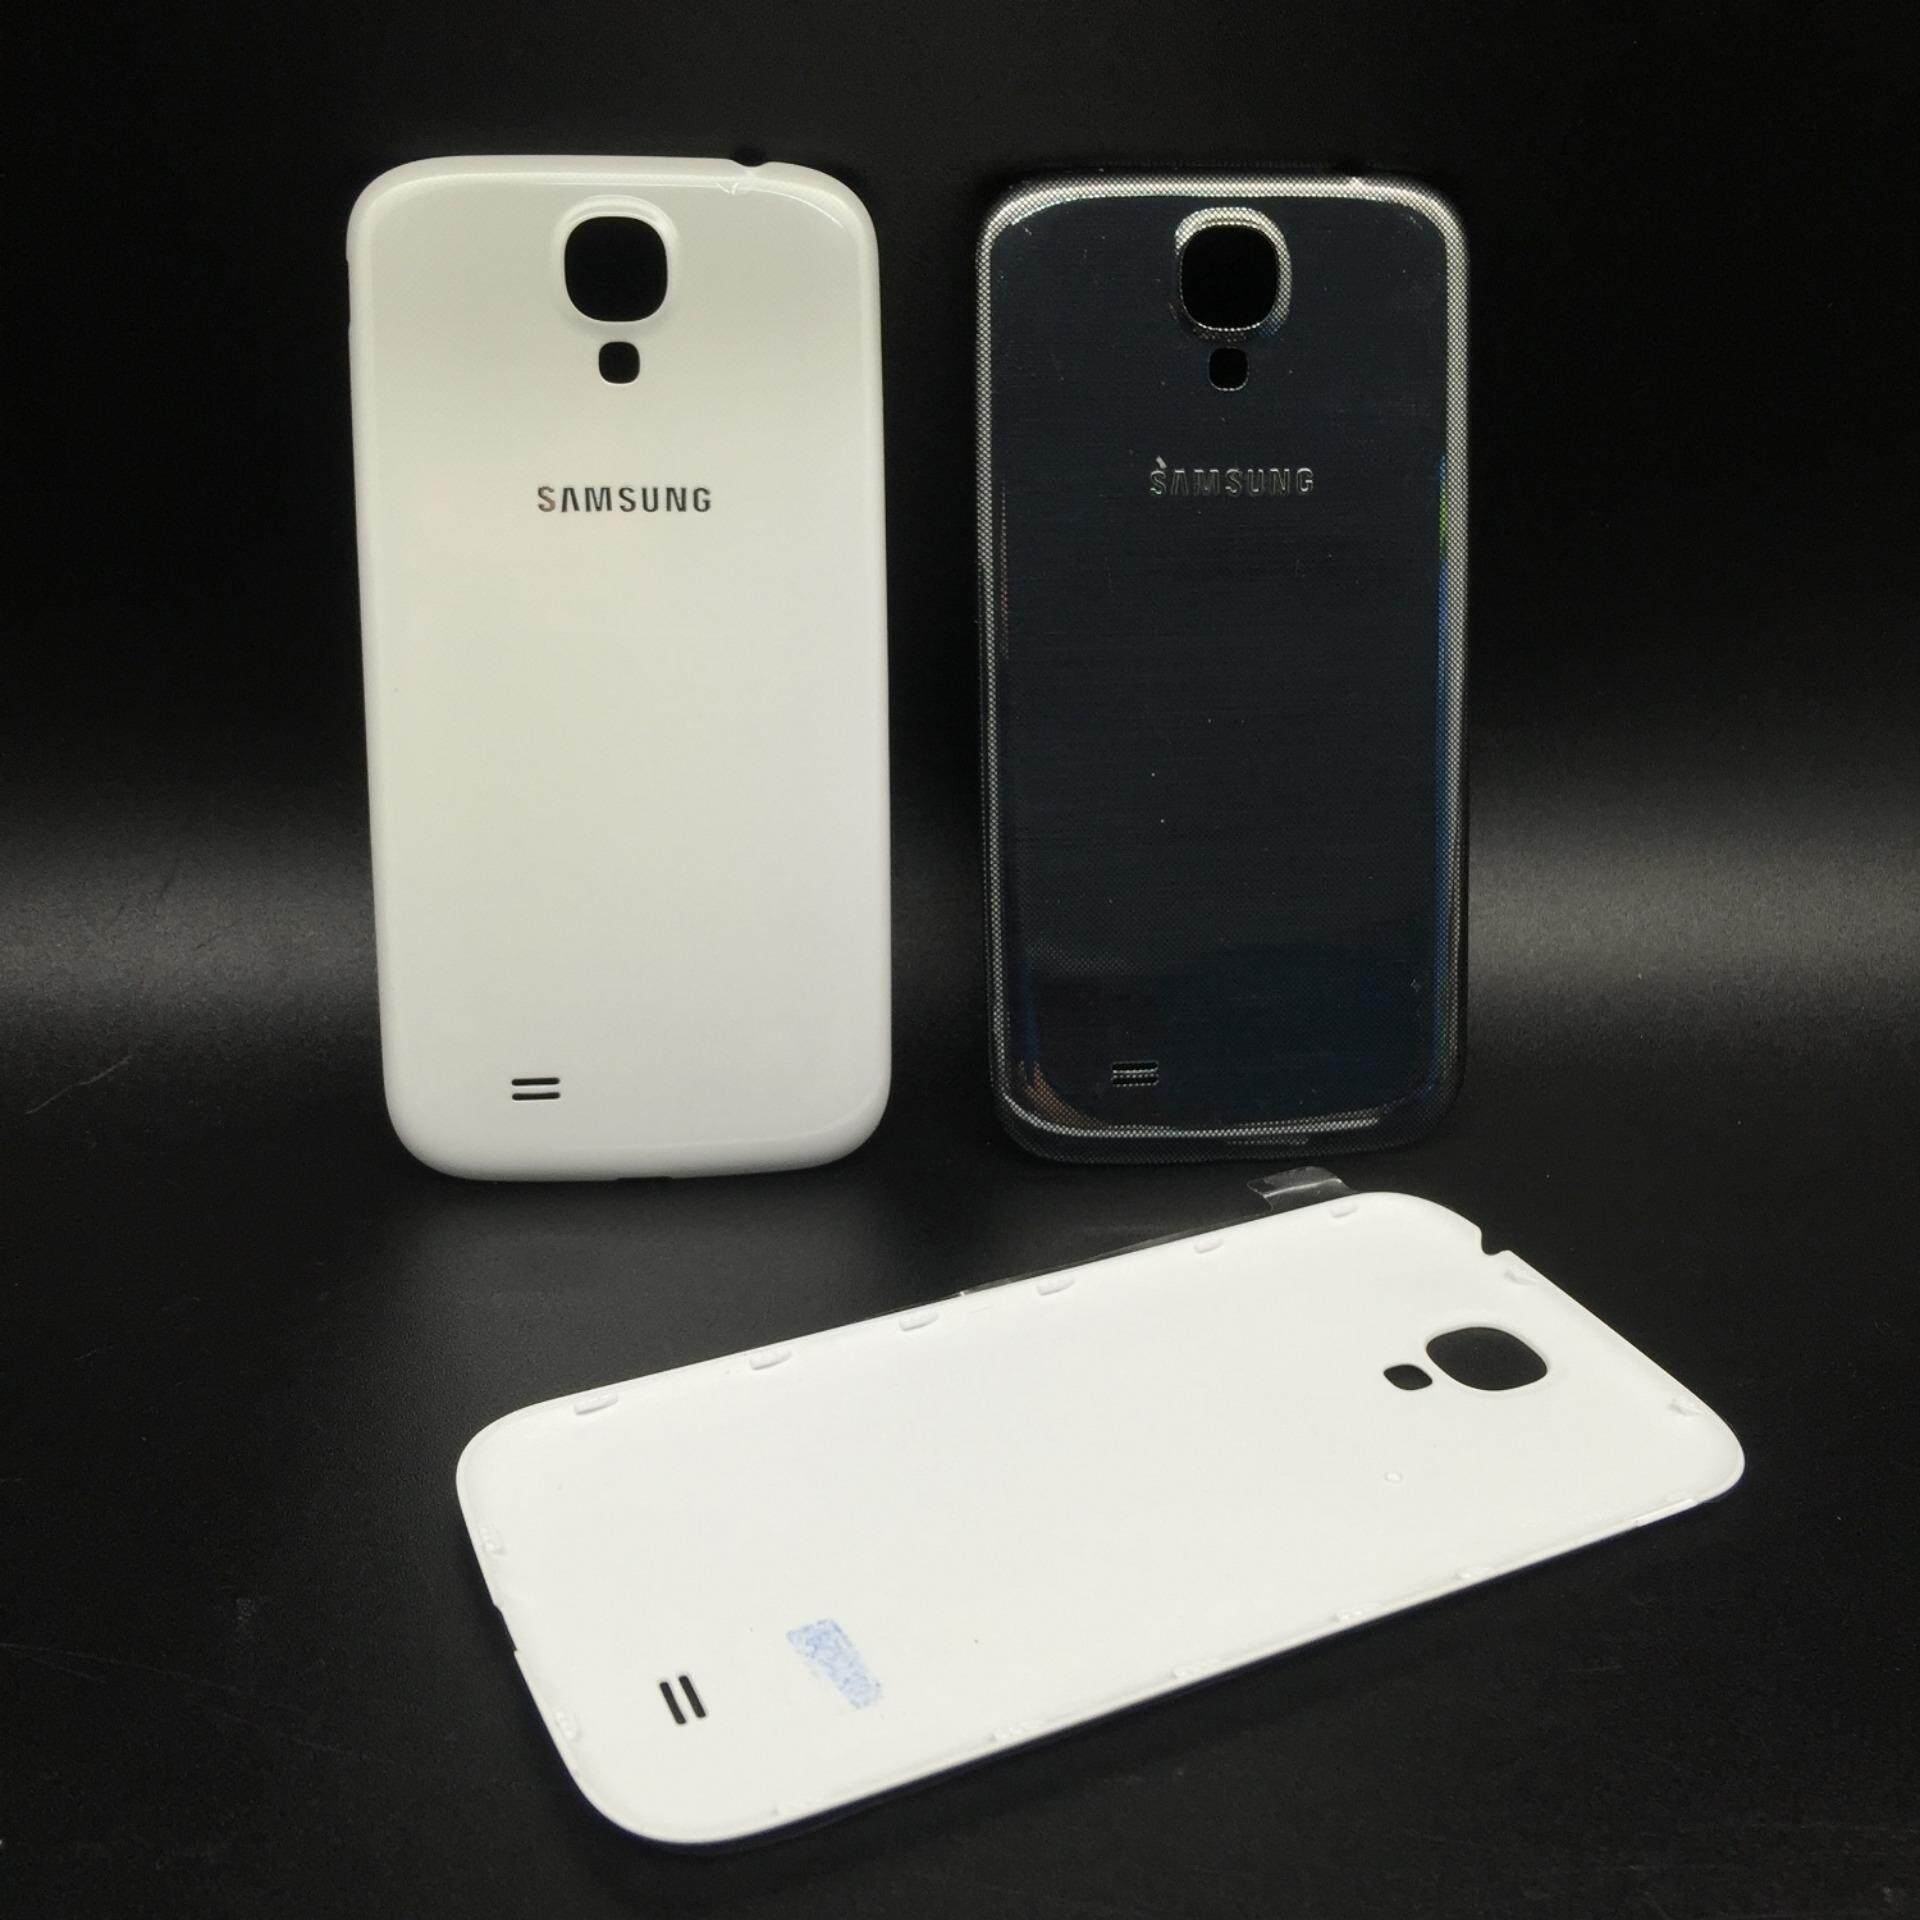 Samsung Replacement Parts Price In Malaysia Best Galaxy S4 I9500 New All Black Pitlong High Quality Battery Cover Back Housing